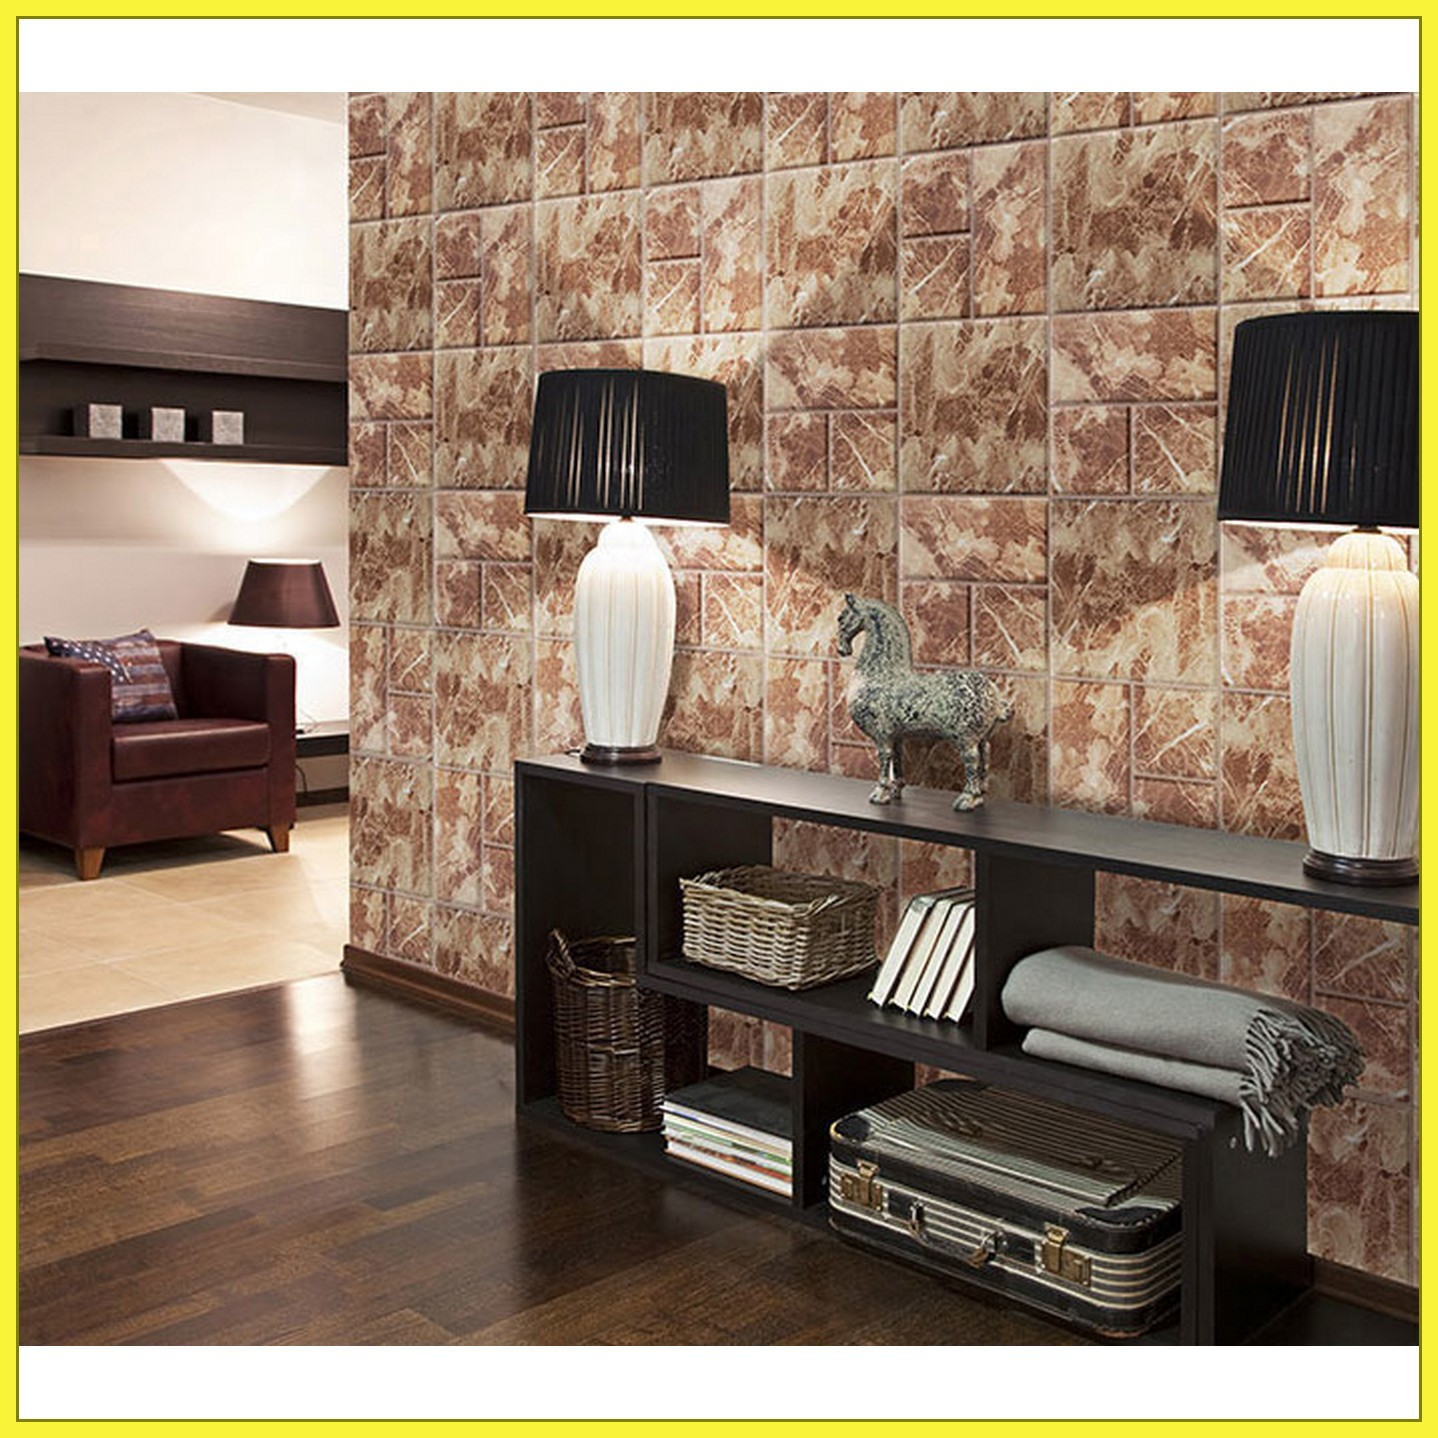 FIX MARBLE 3D WALLCOVER BROWN MARBLE - SDM 27504 EMBOSSED